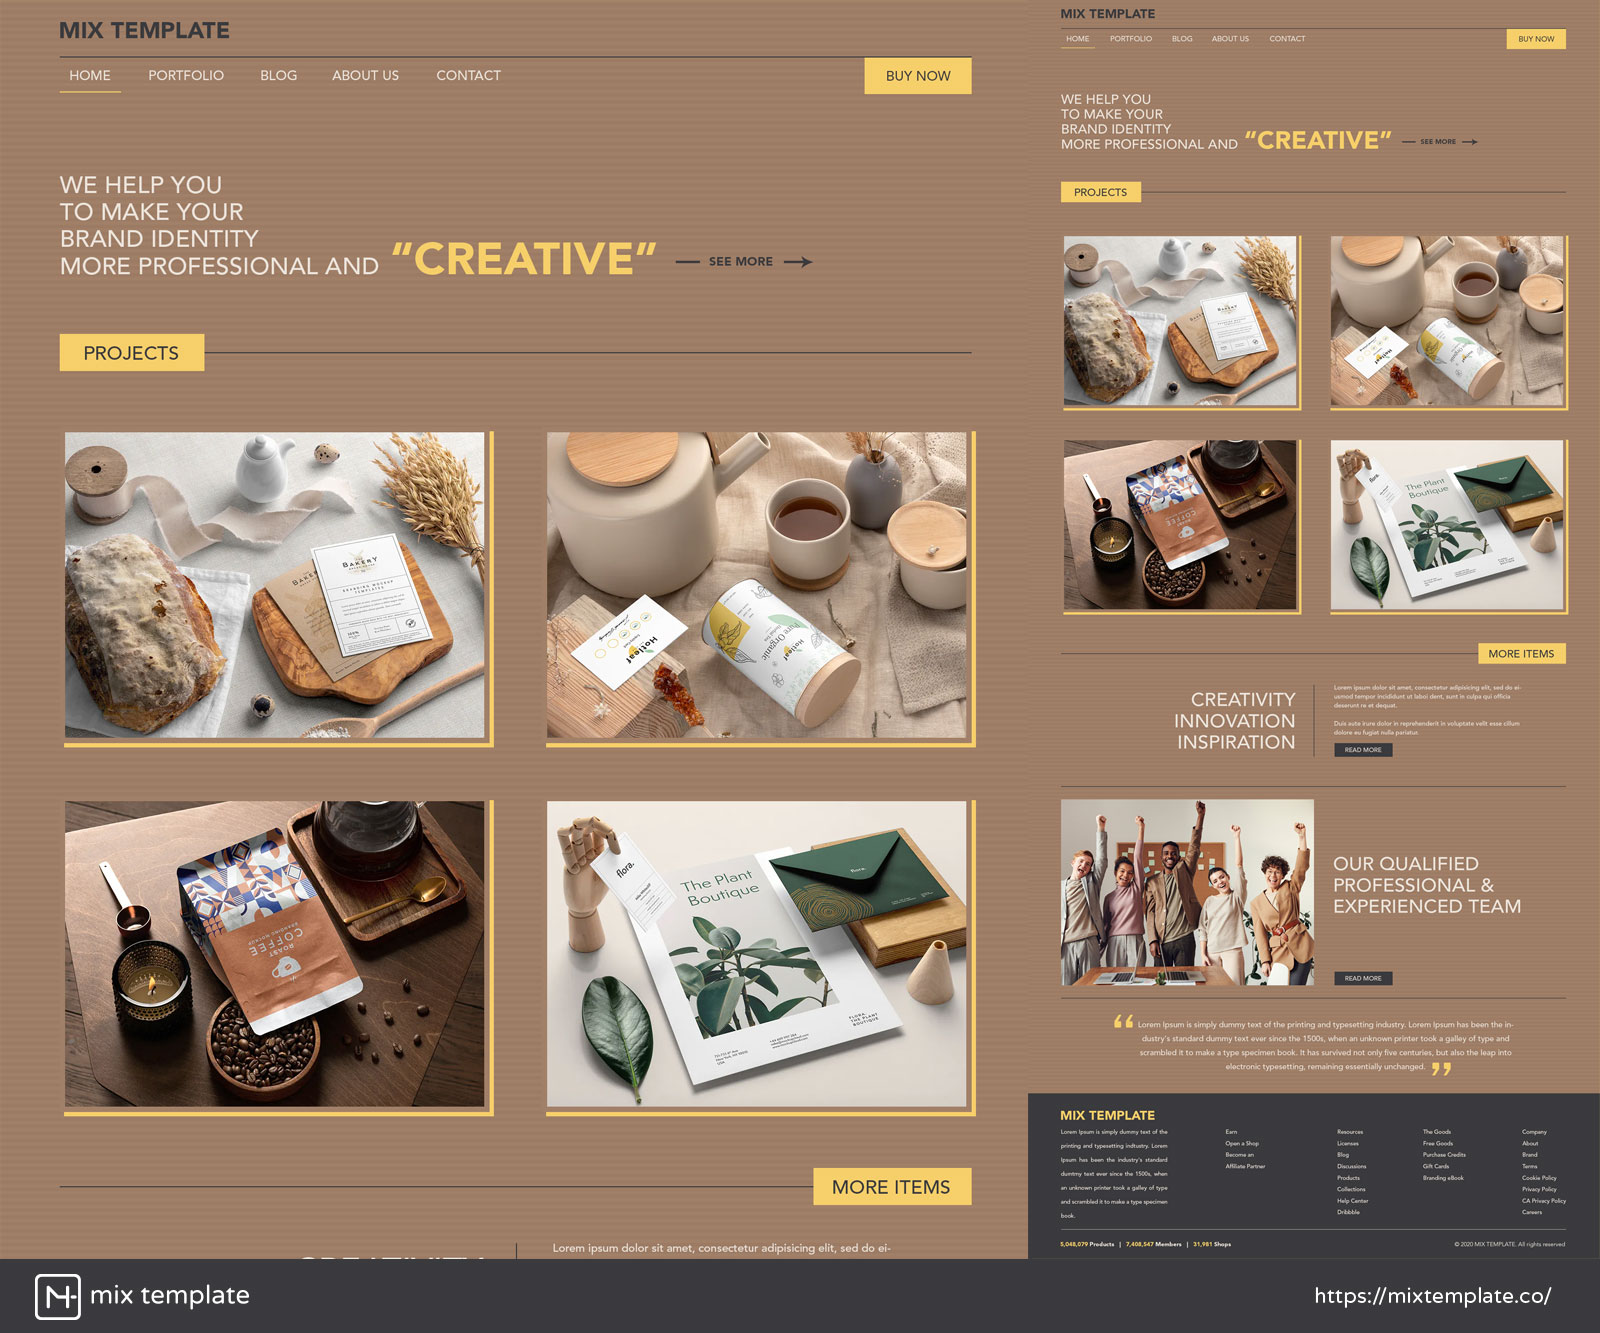 Free-Creative-Graphics-Agency-Website-PSD-Template